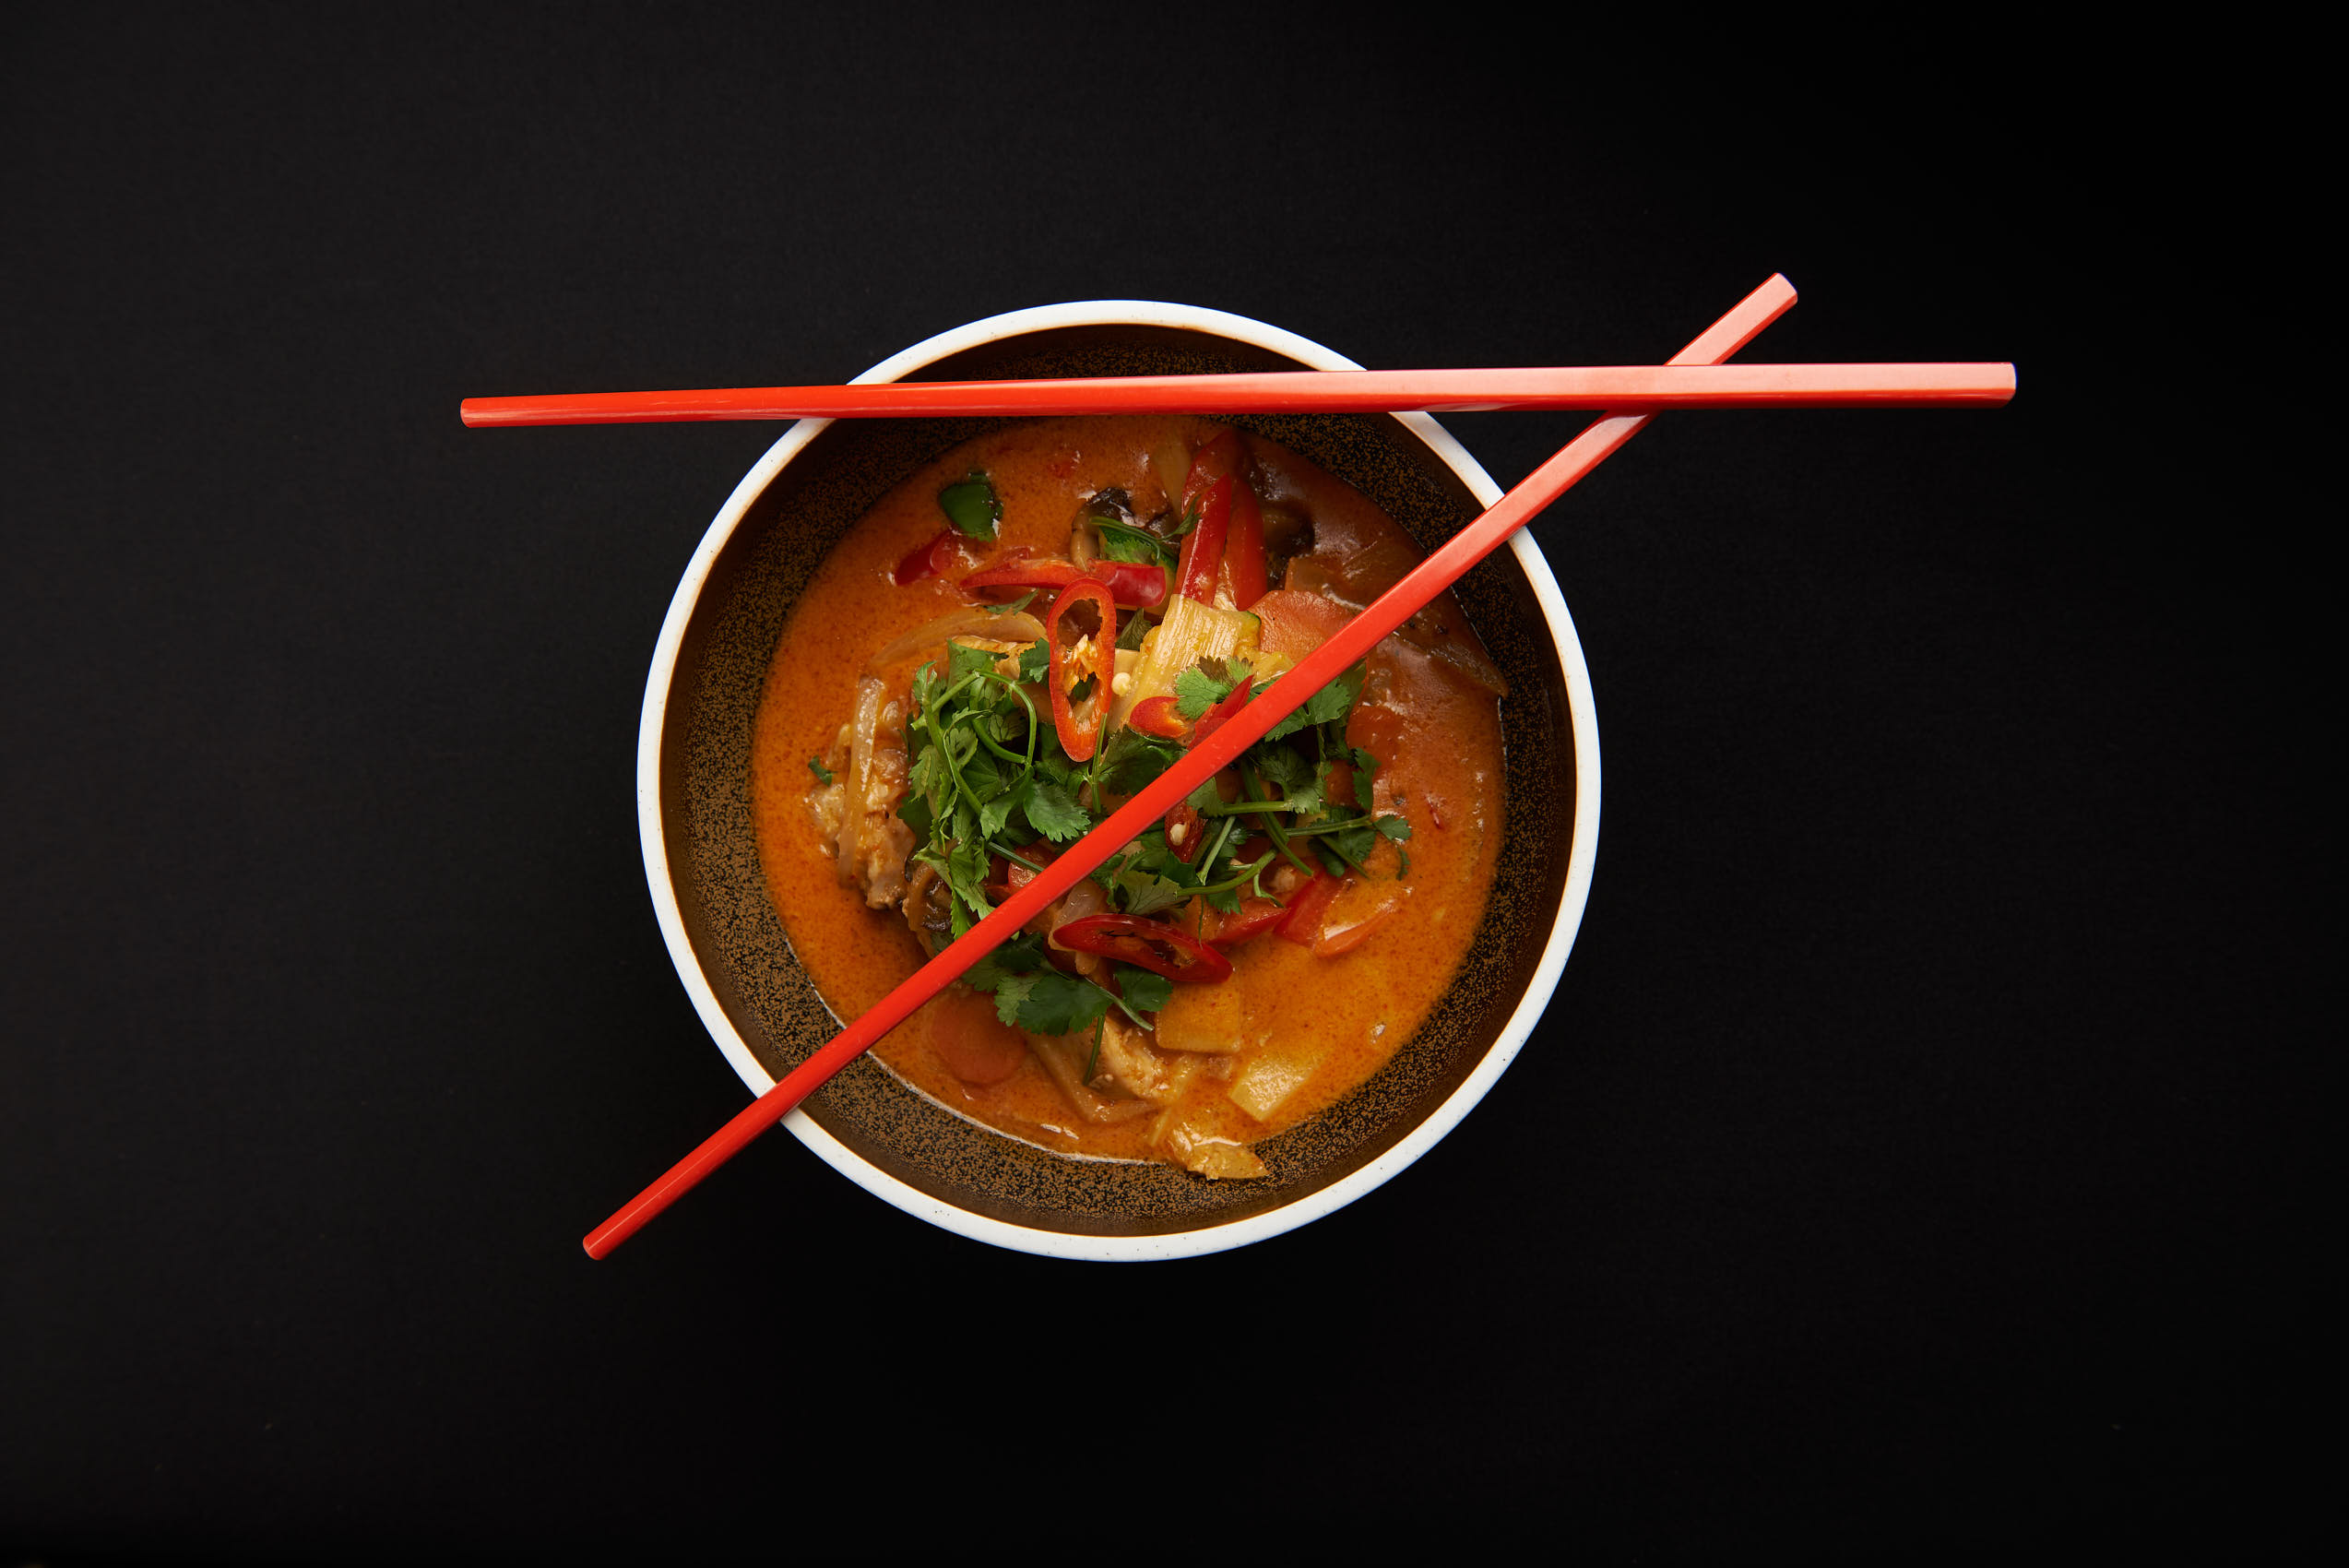 Red curry, thai photo by Marcel Tiedje